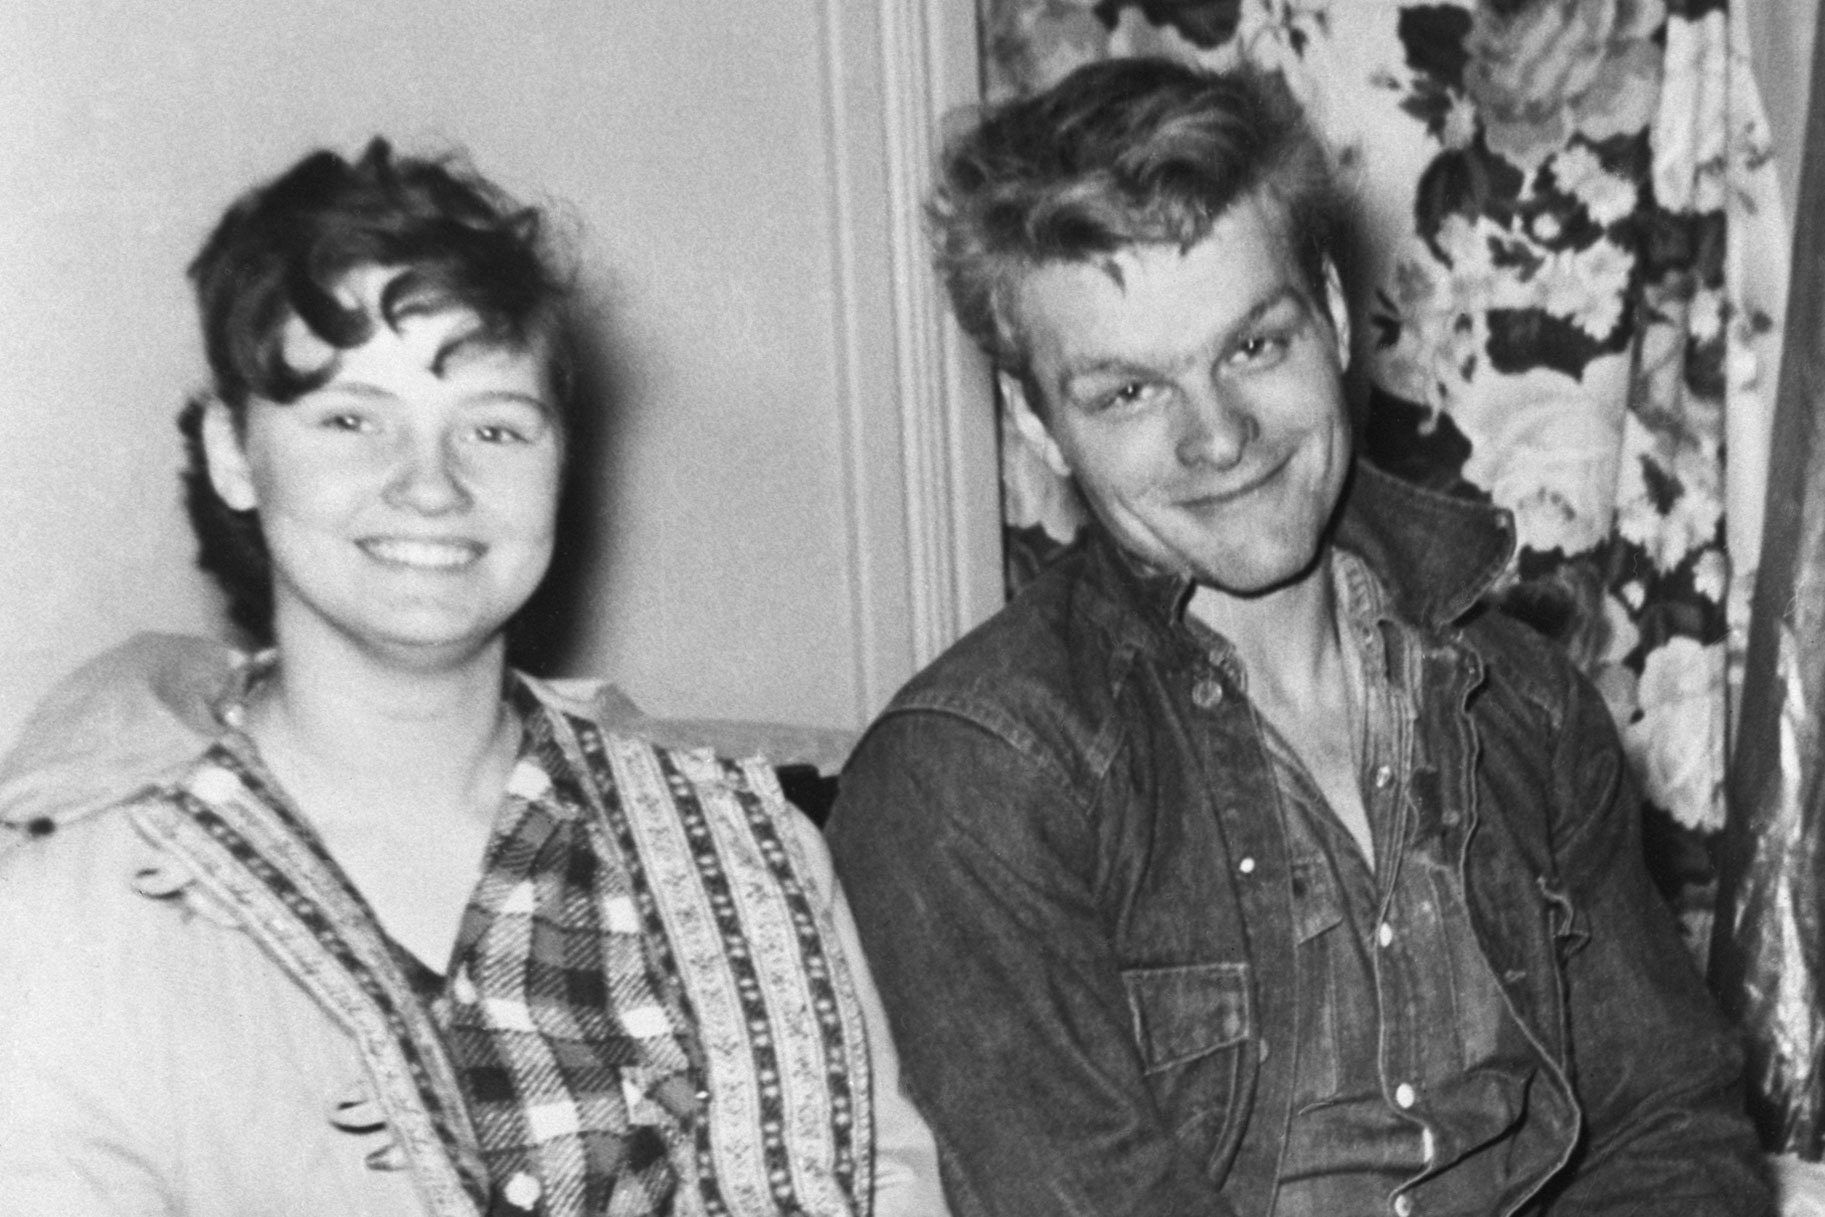 Charles Starkweather Caril Fugate G